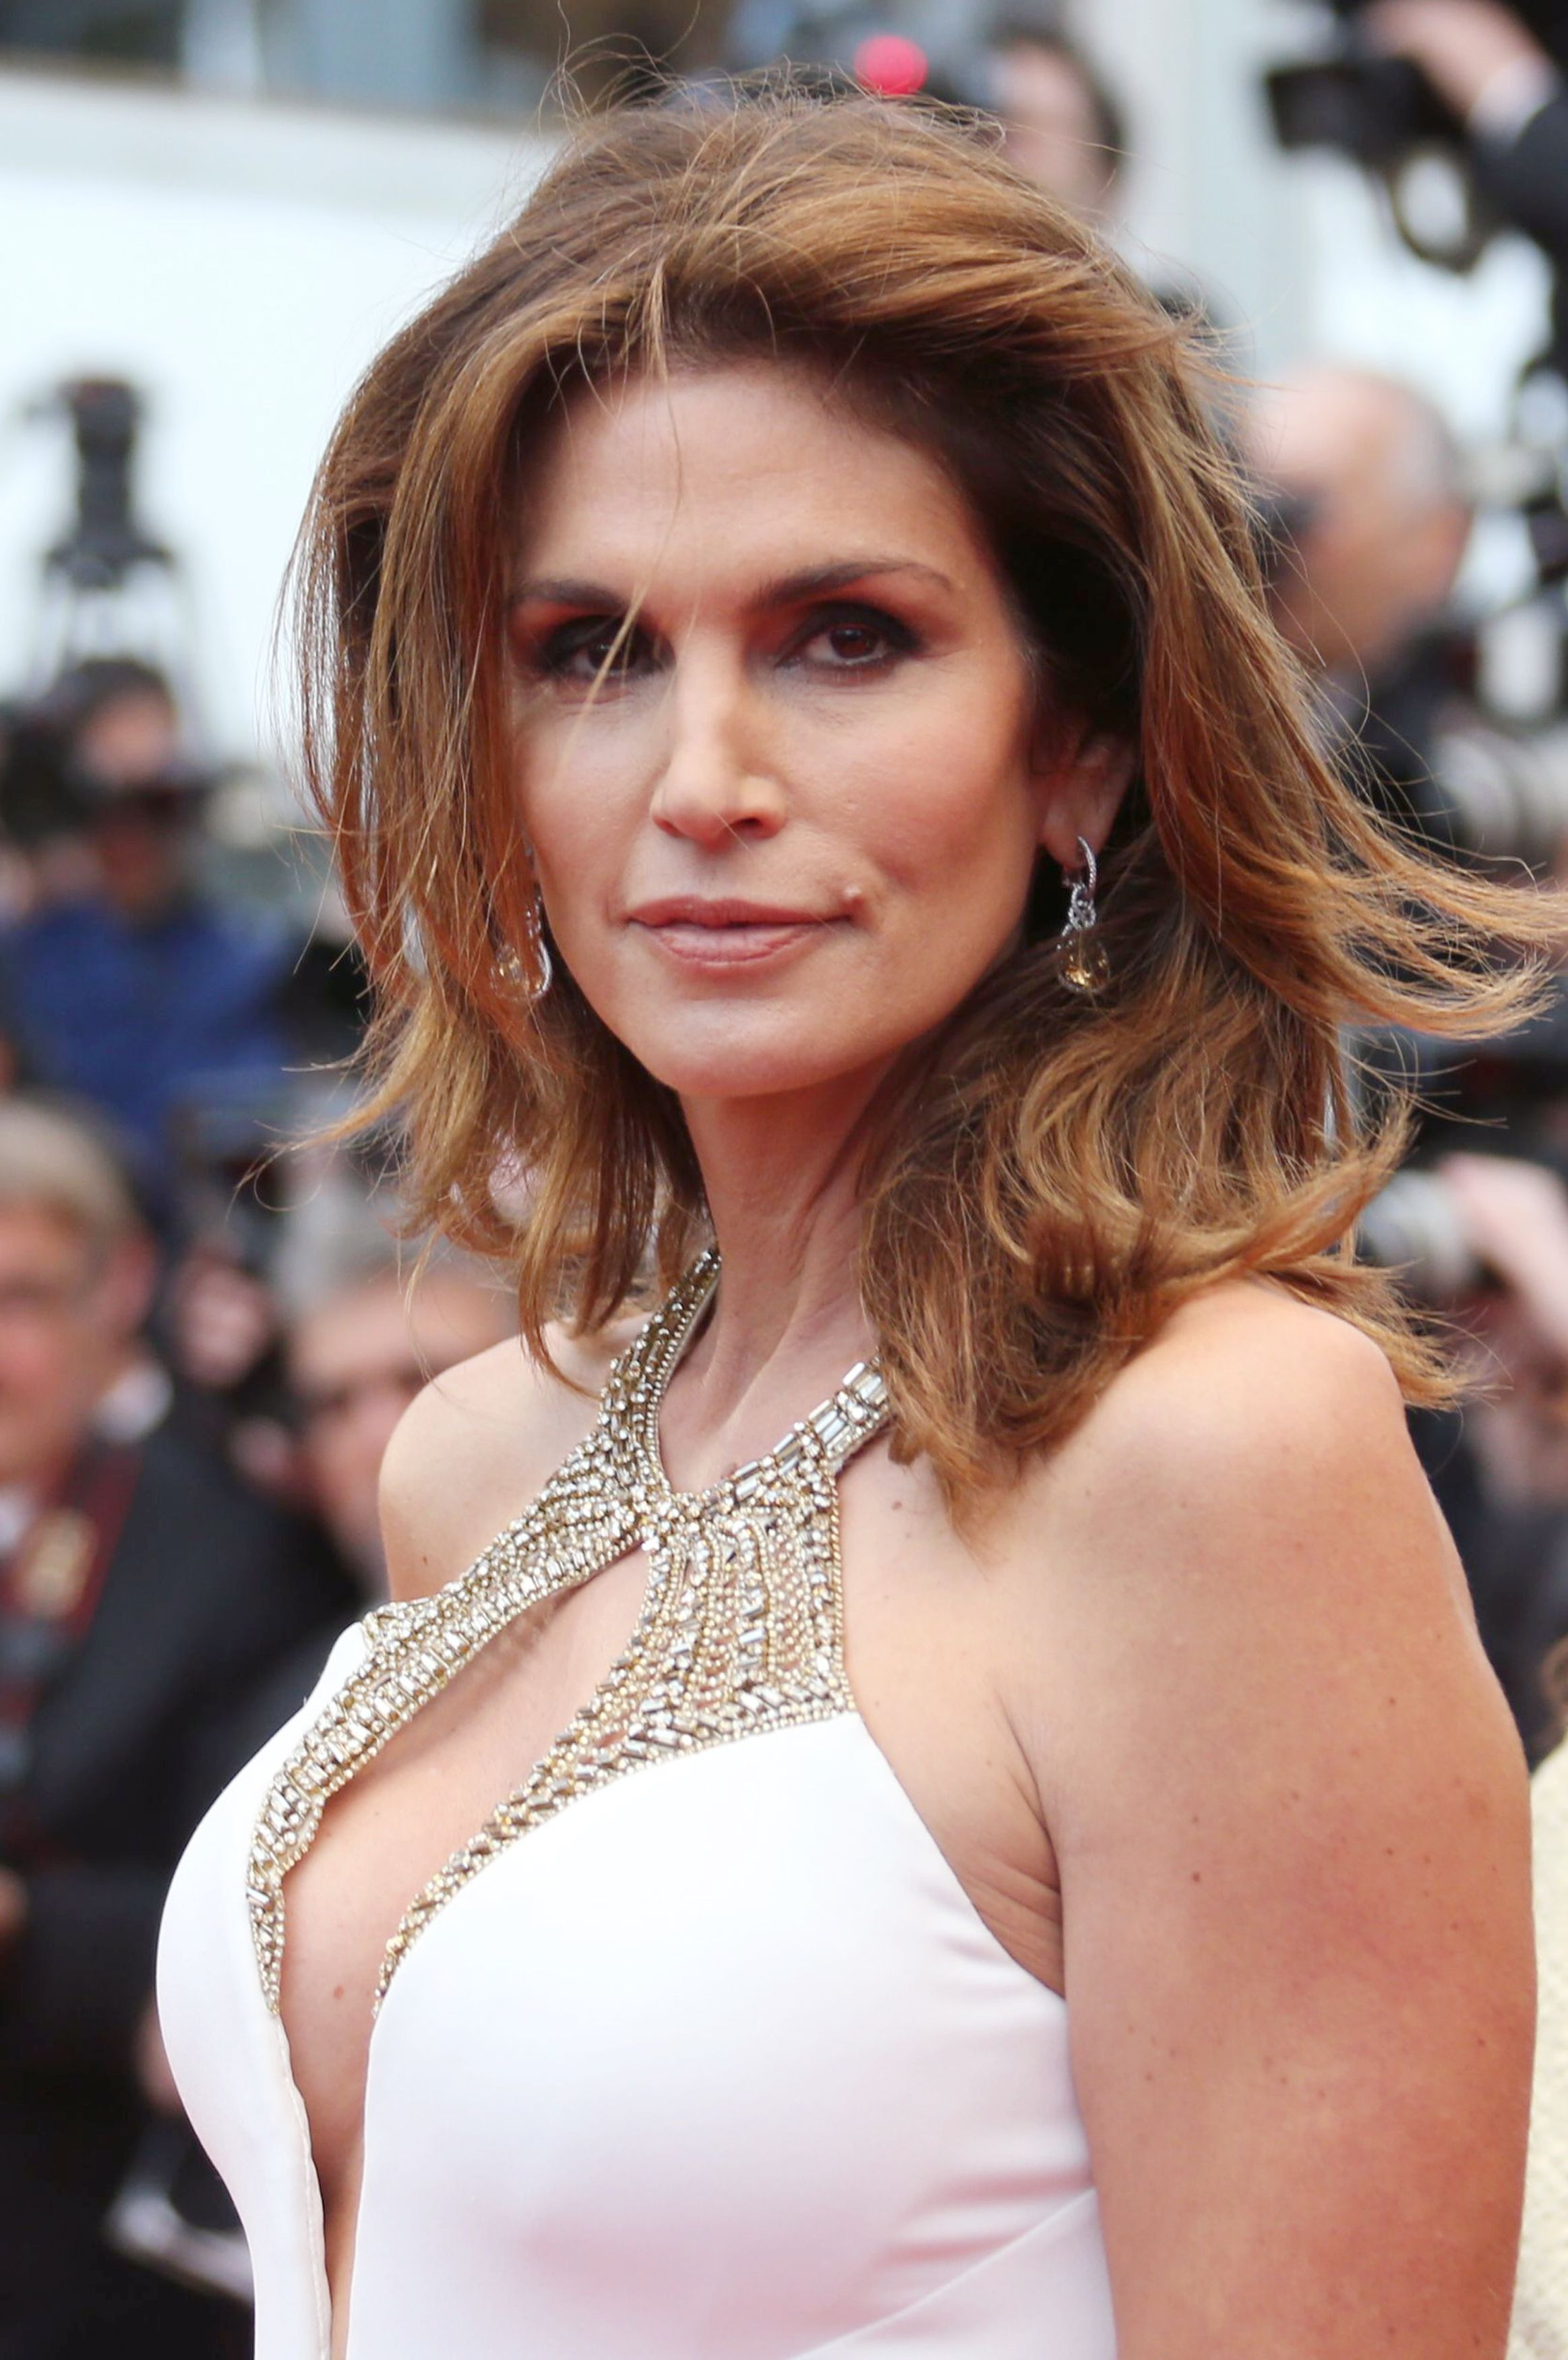 Cindy Crawford's Unretouched 'Marie Claire' Photo Causes A Stir